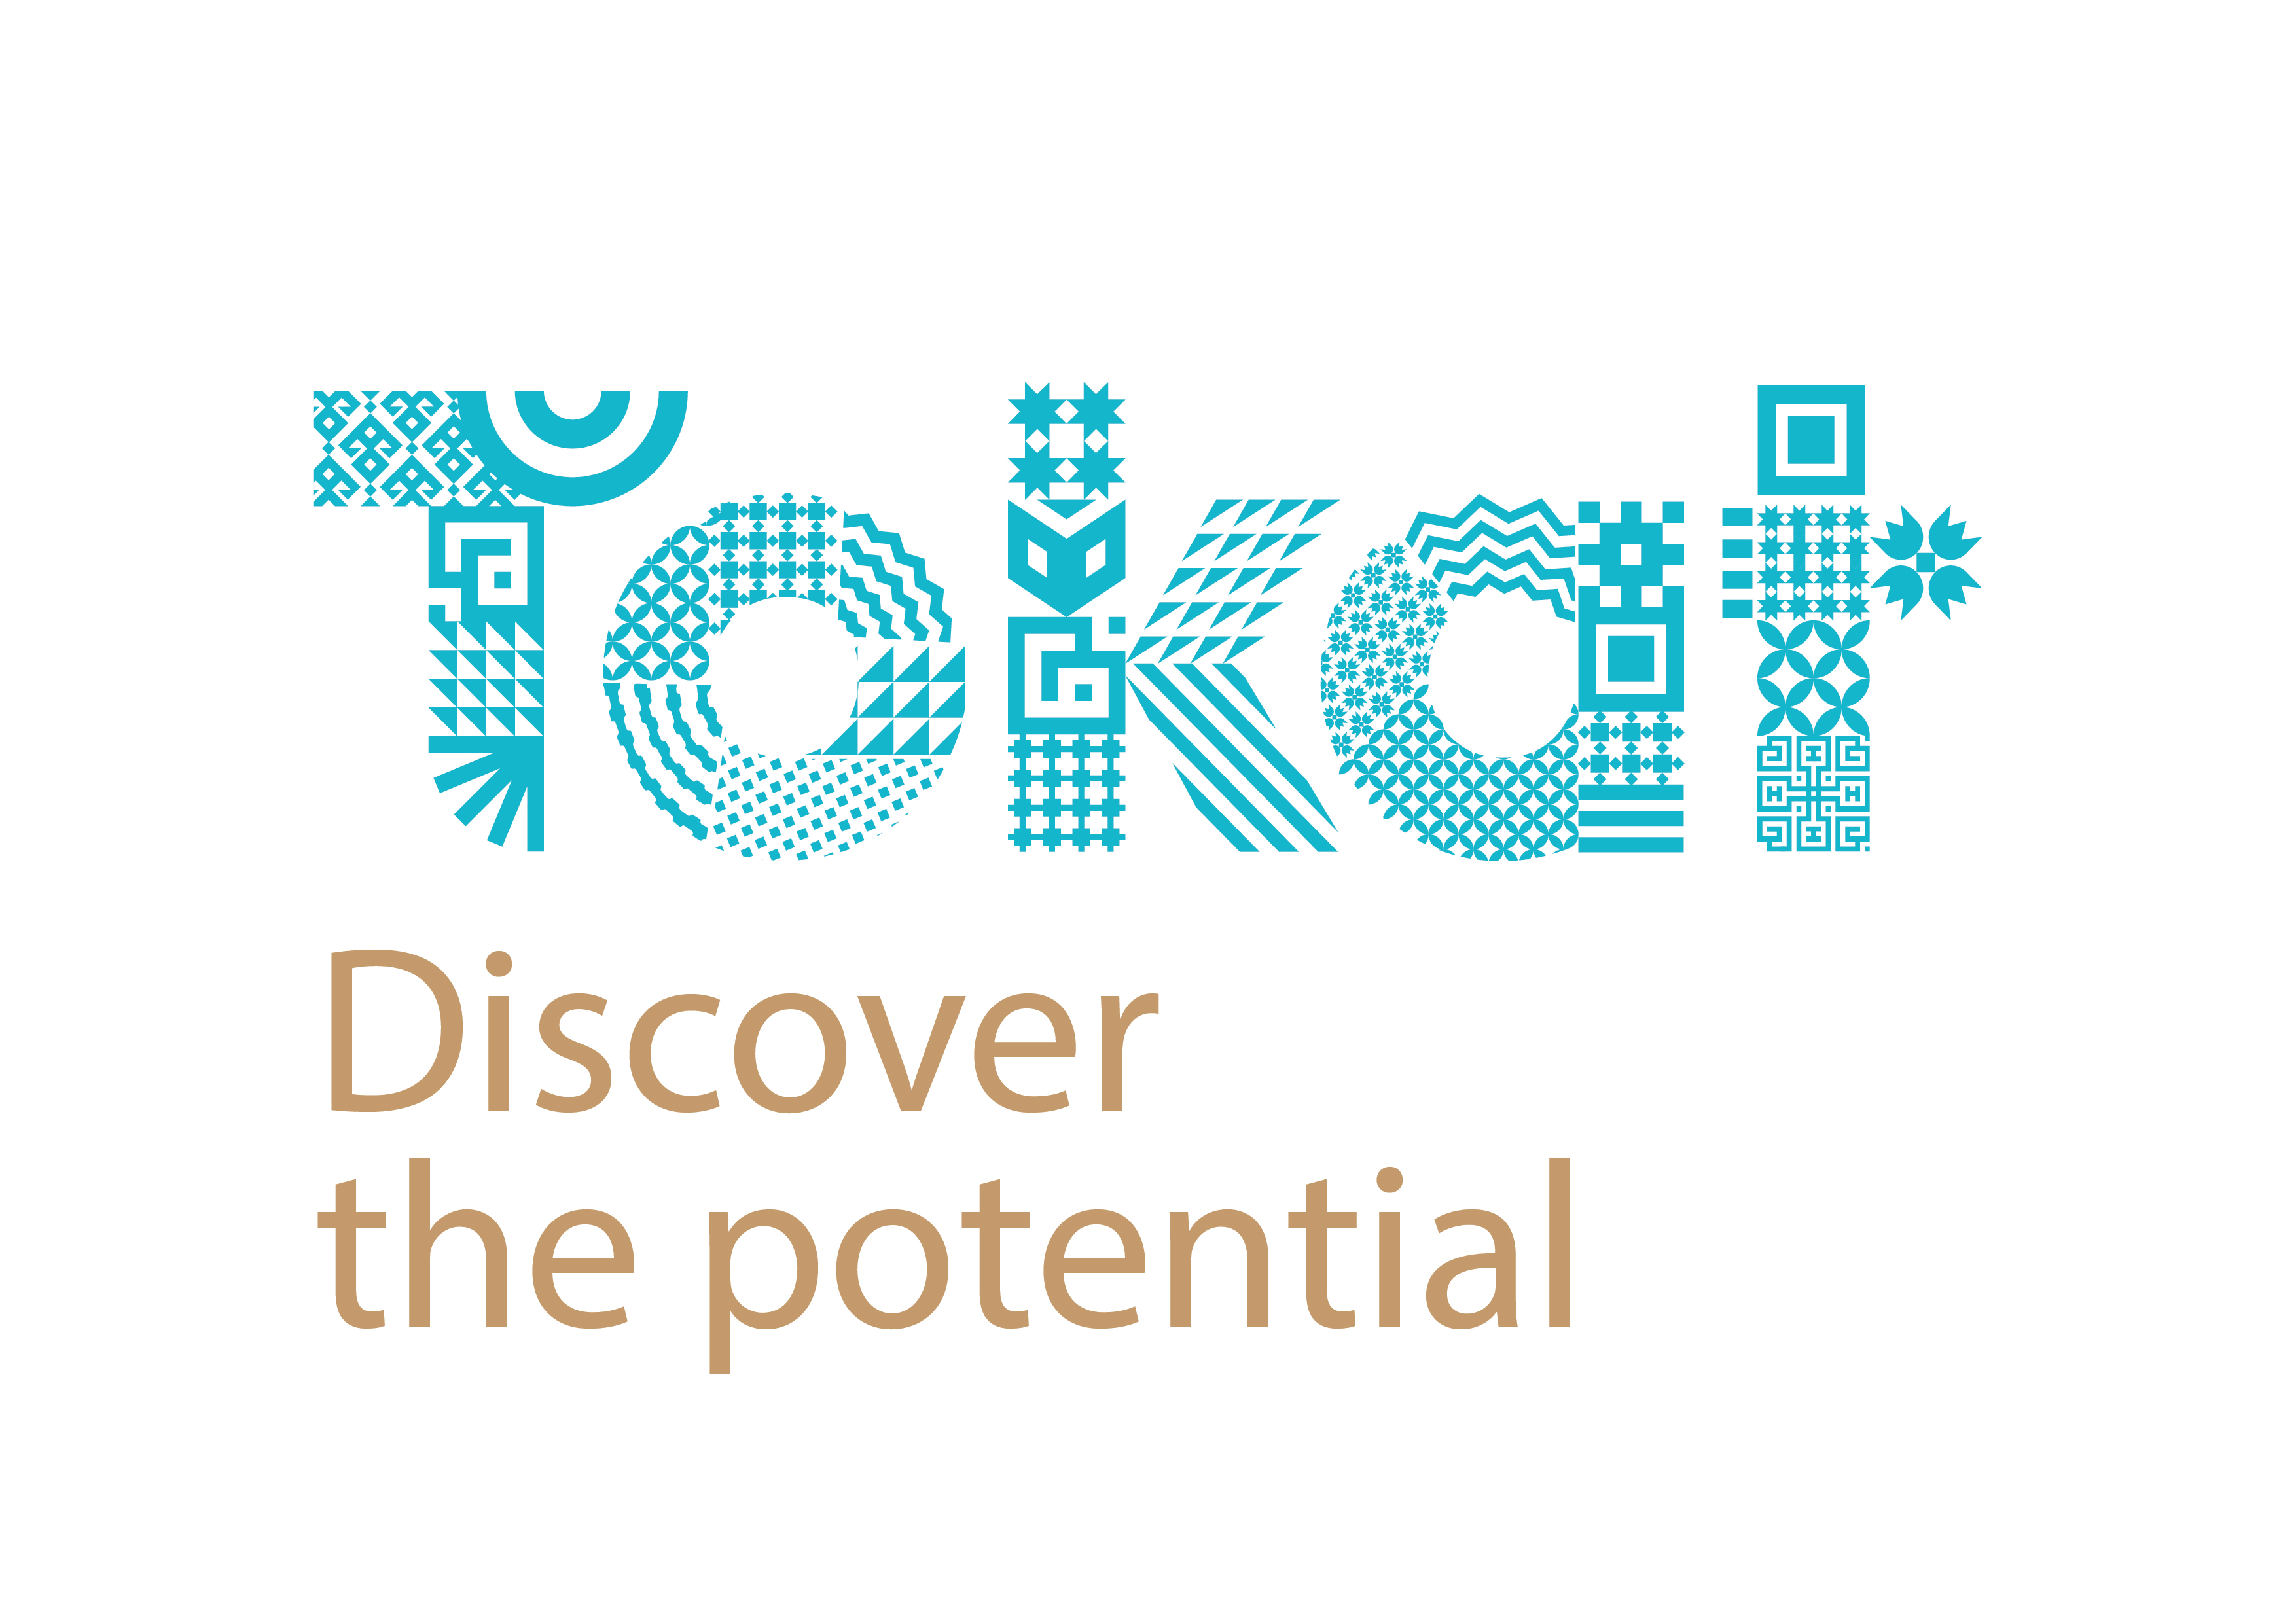 Tokat Discover The Potential